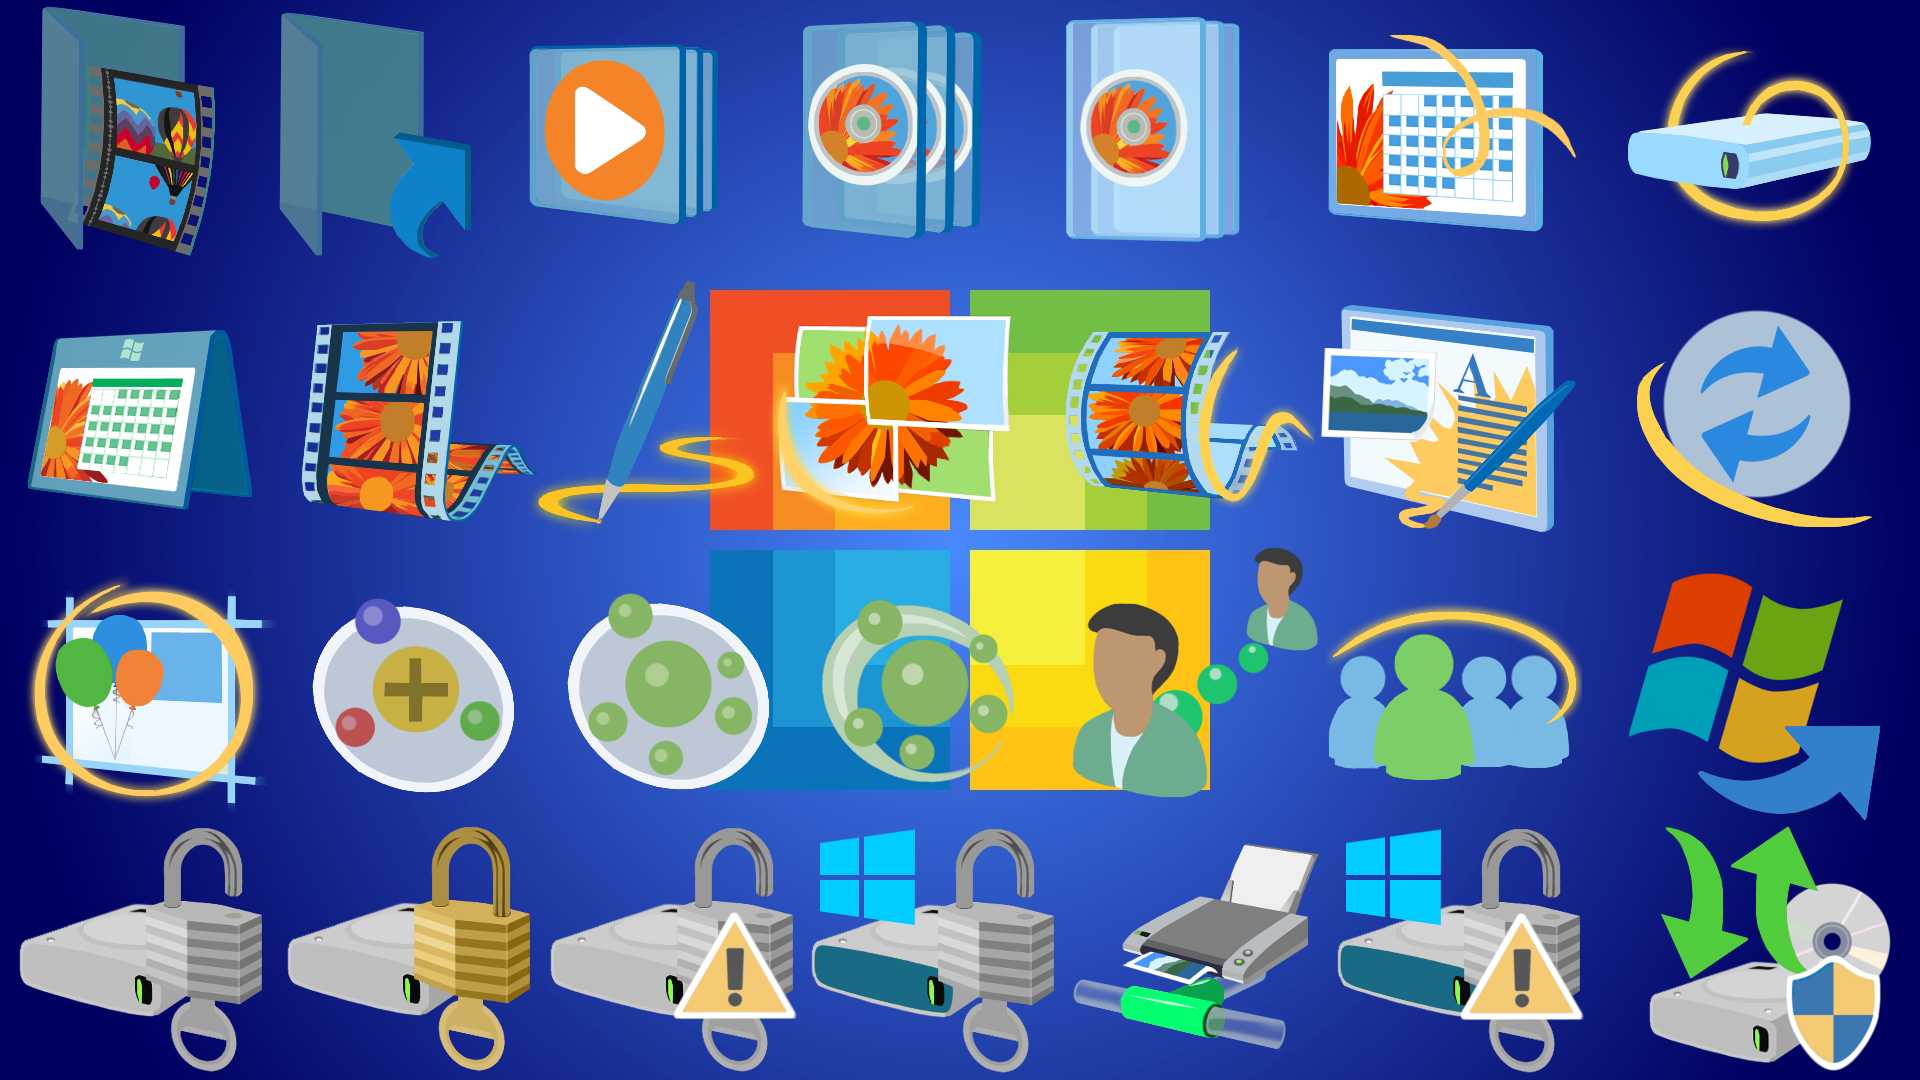 9 Windows 7 Update Icon Images - Windows Update Icon, Icon Pack